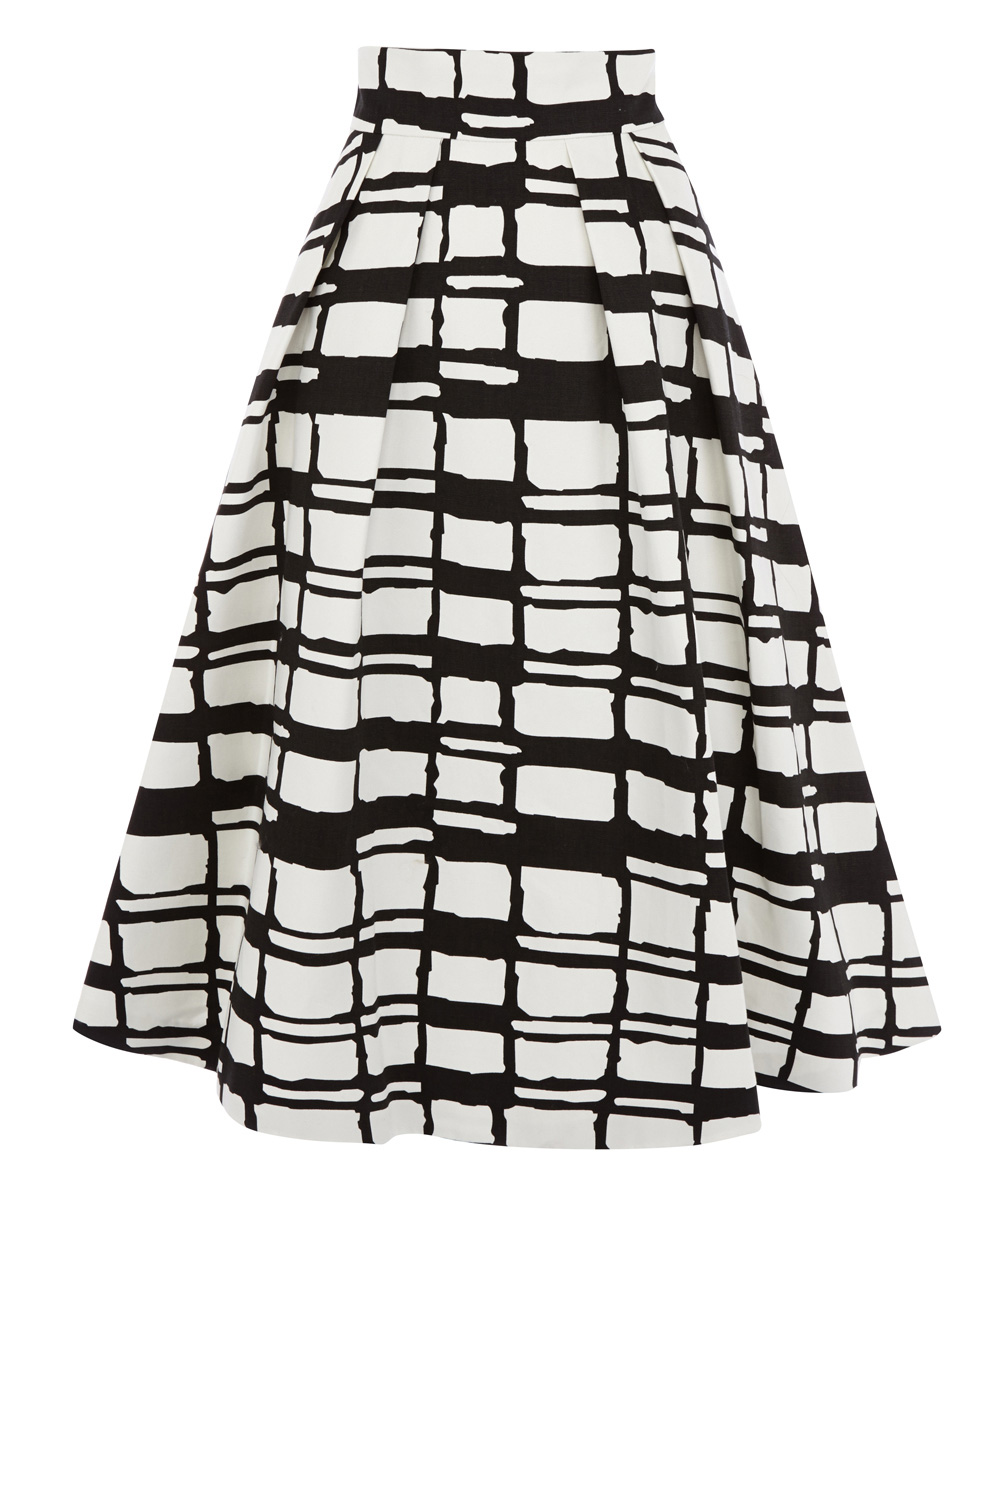 Coast, Irris Check Skirt £85